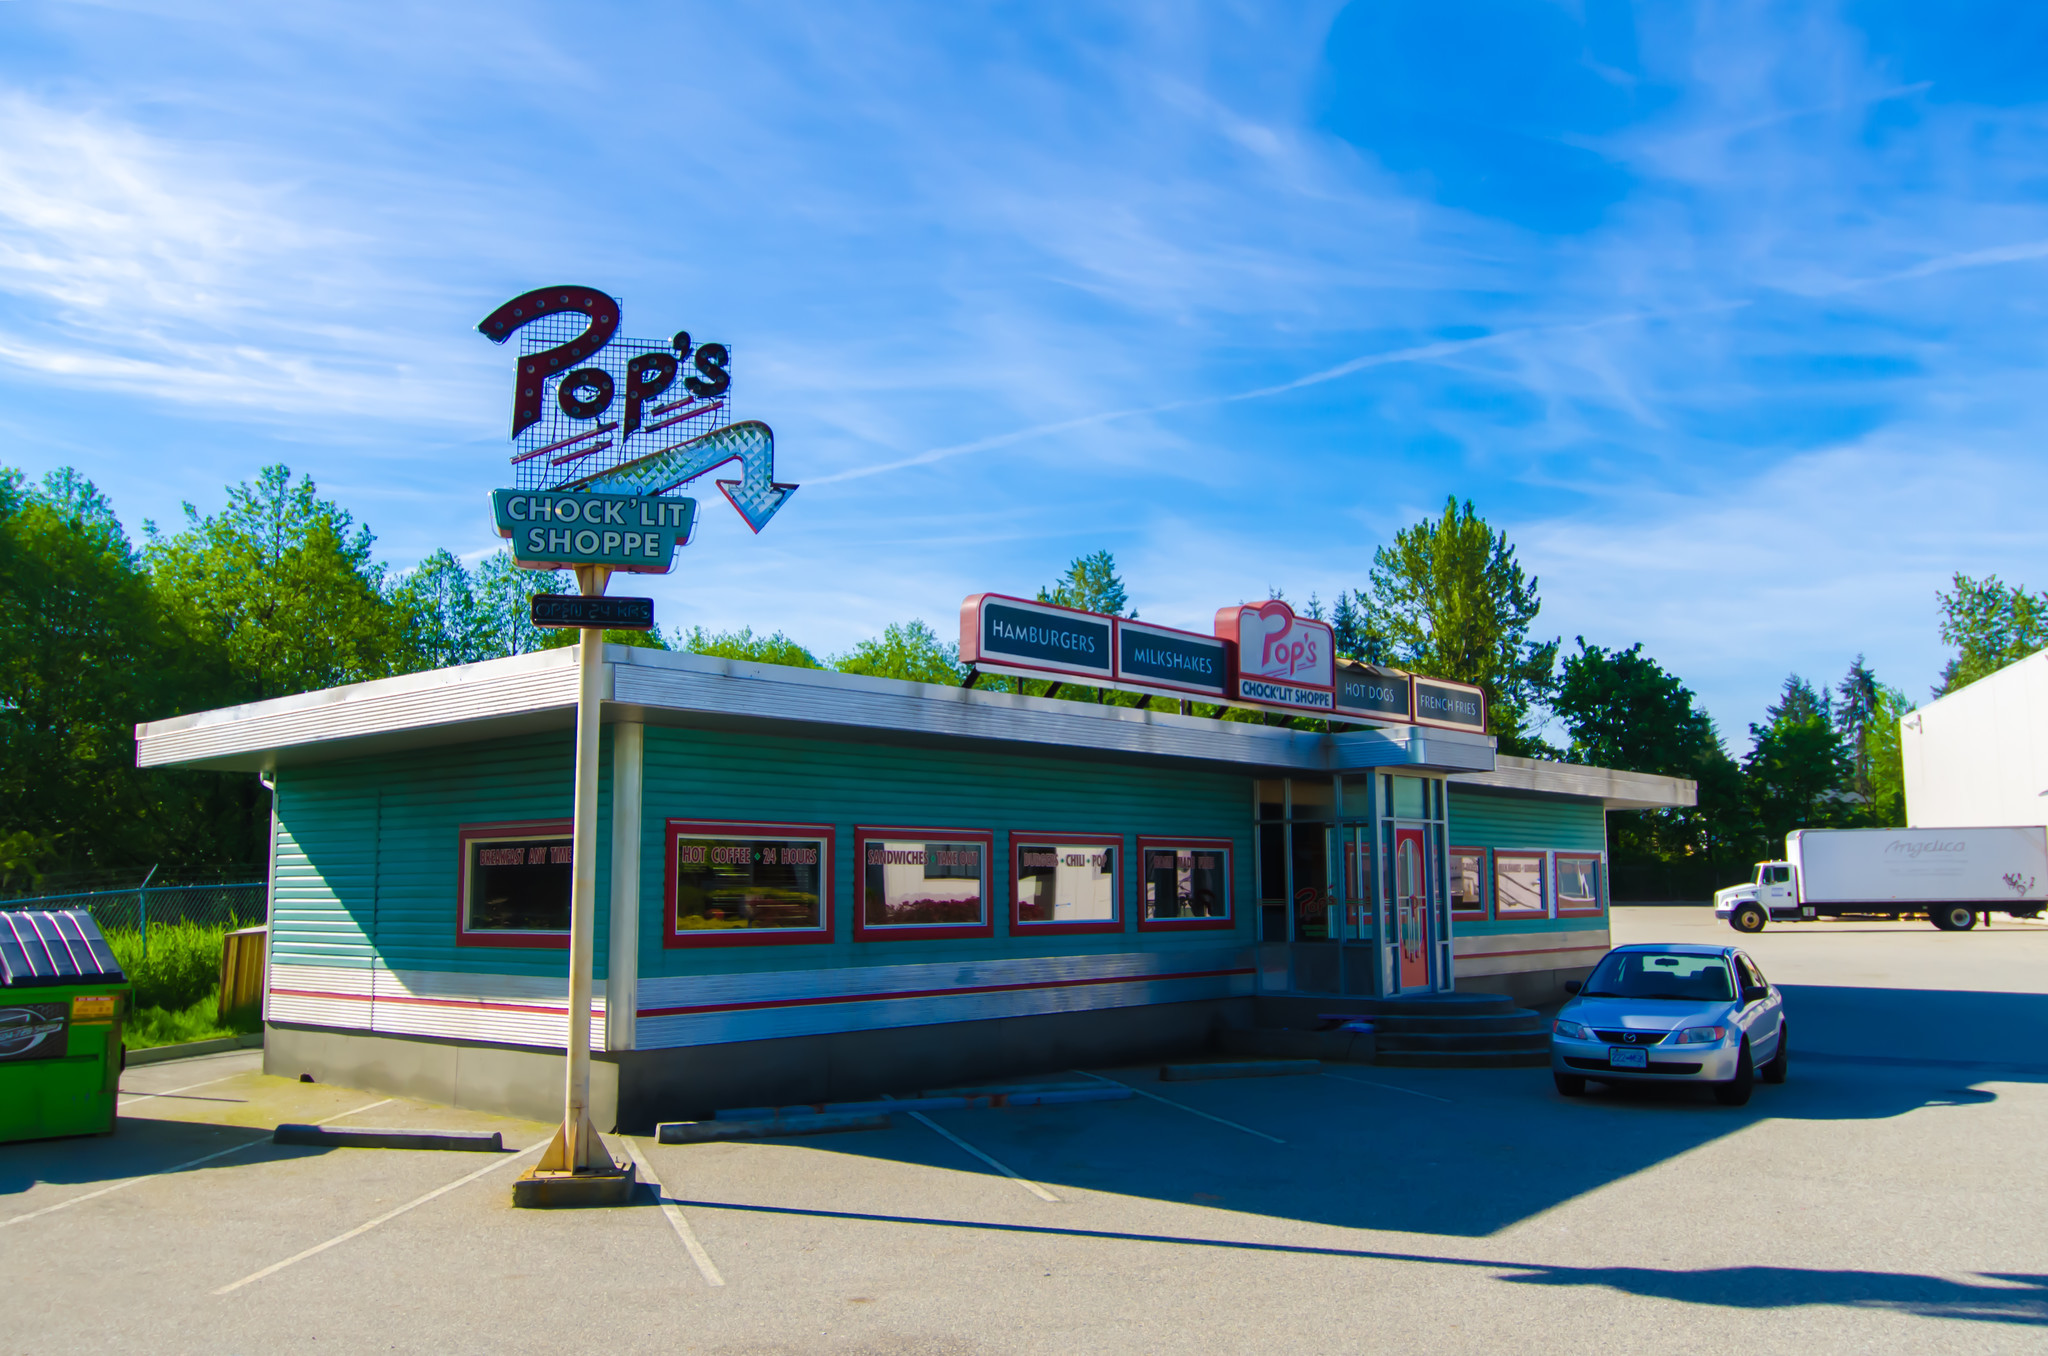 Riverdale S Pop S Chocklit Shoppe Diners Are Opening Around Canada For 2 Days Only Baltimore Sun